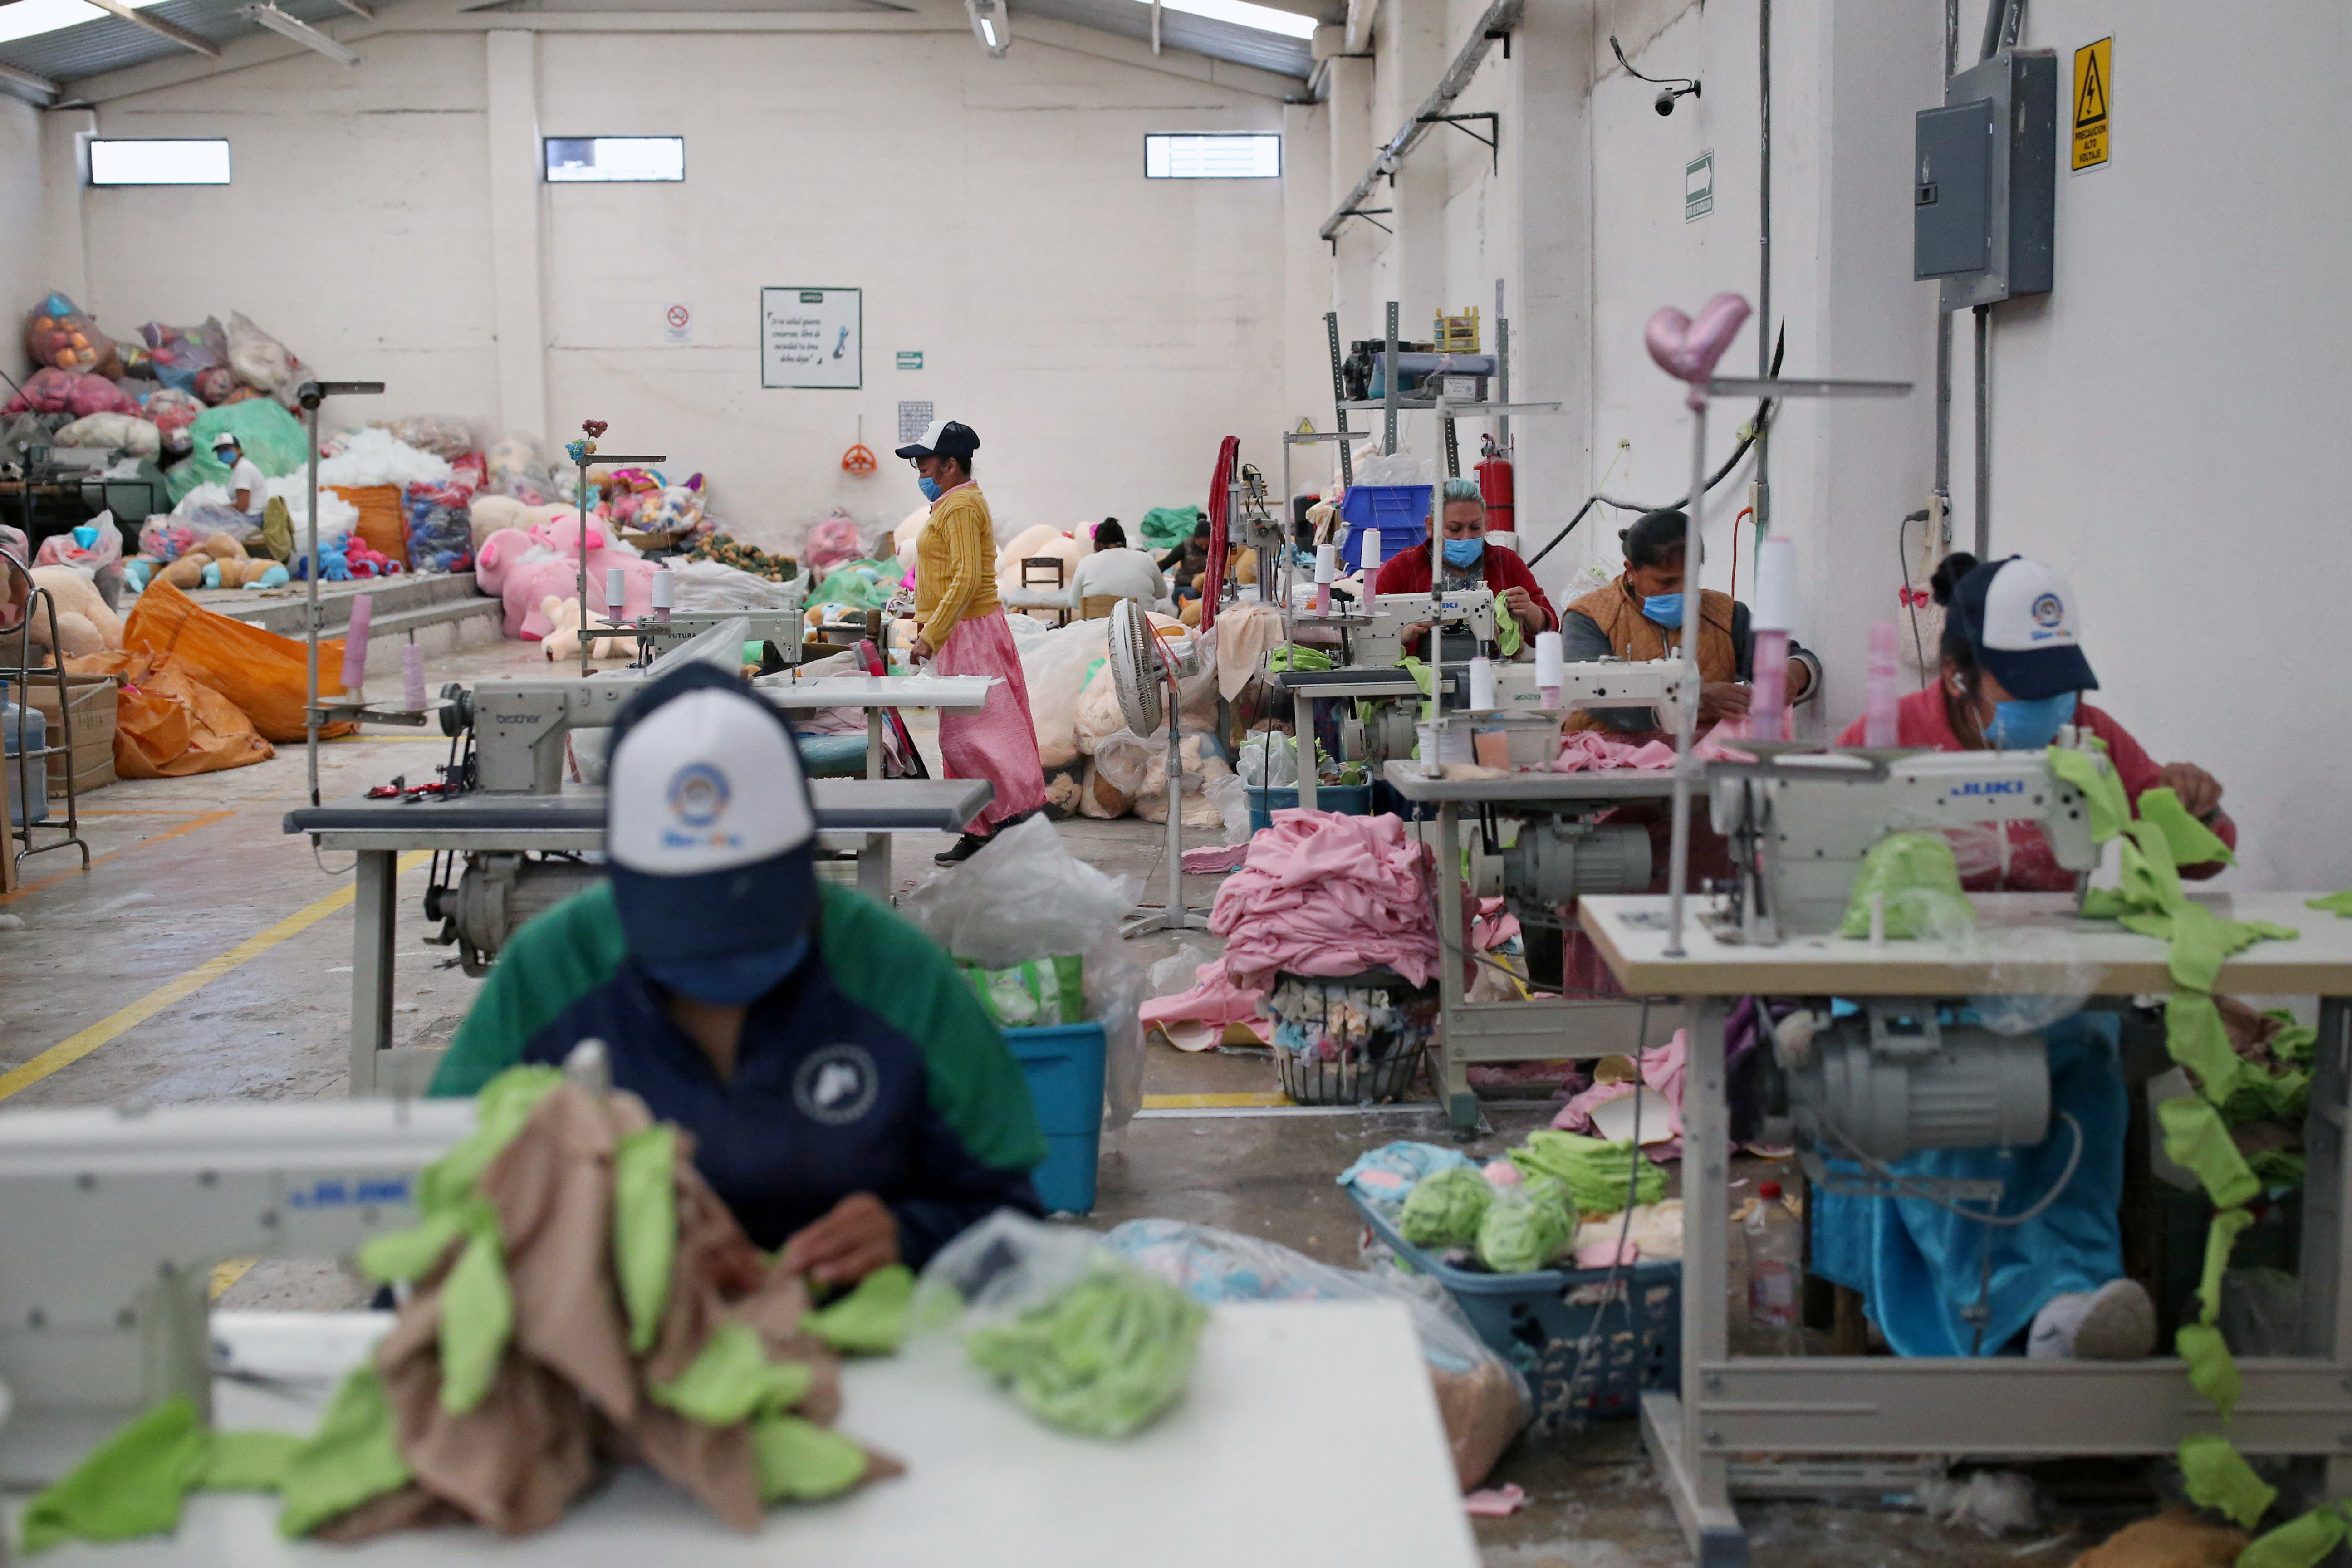 Women work in the manufacture of soft toys at Andy's toy factory in Xonacatlan, as the coronavirus disease (COVID-19) outbreak continues ahead of Valentine's Day in Mexico, February 12, 2021. REUTERS/Edgard Garrido